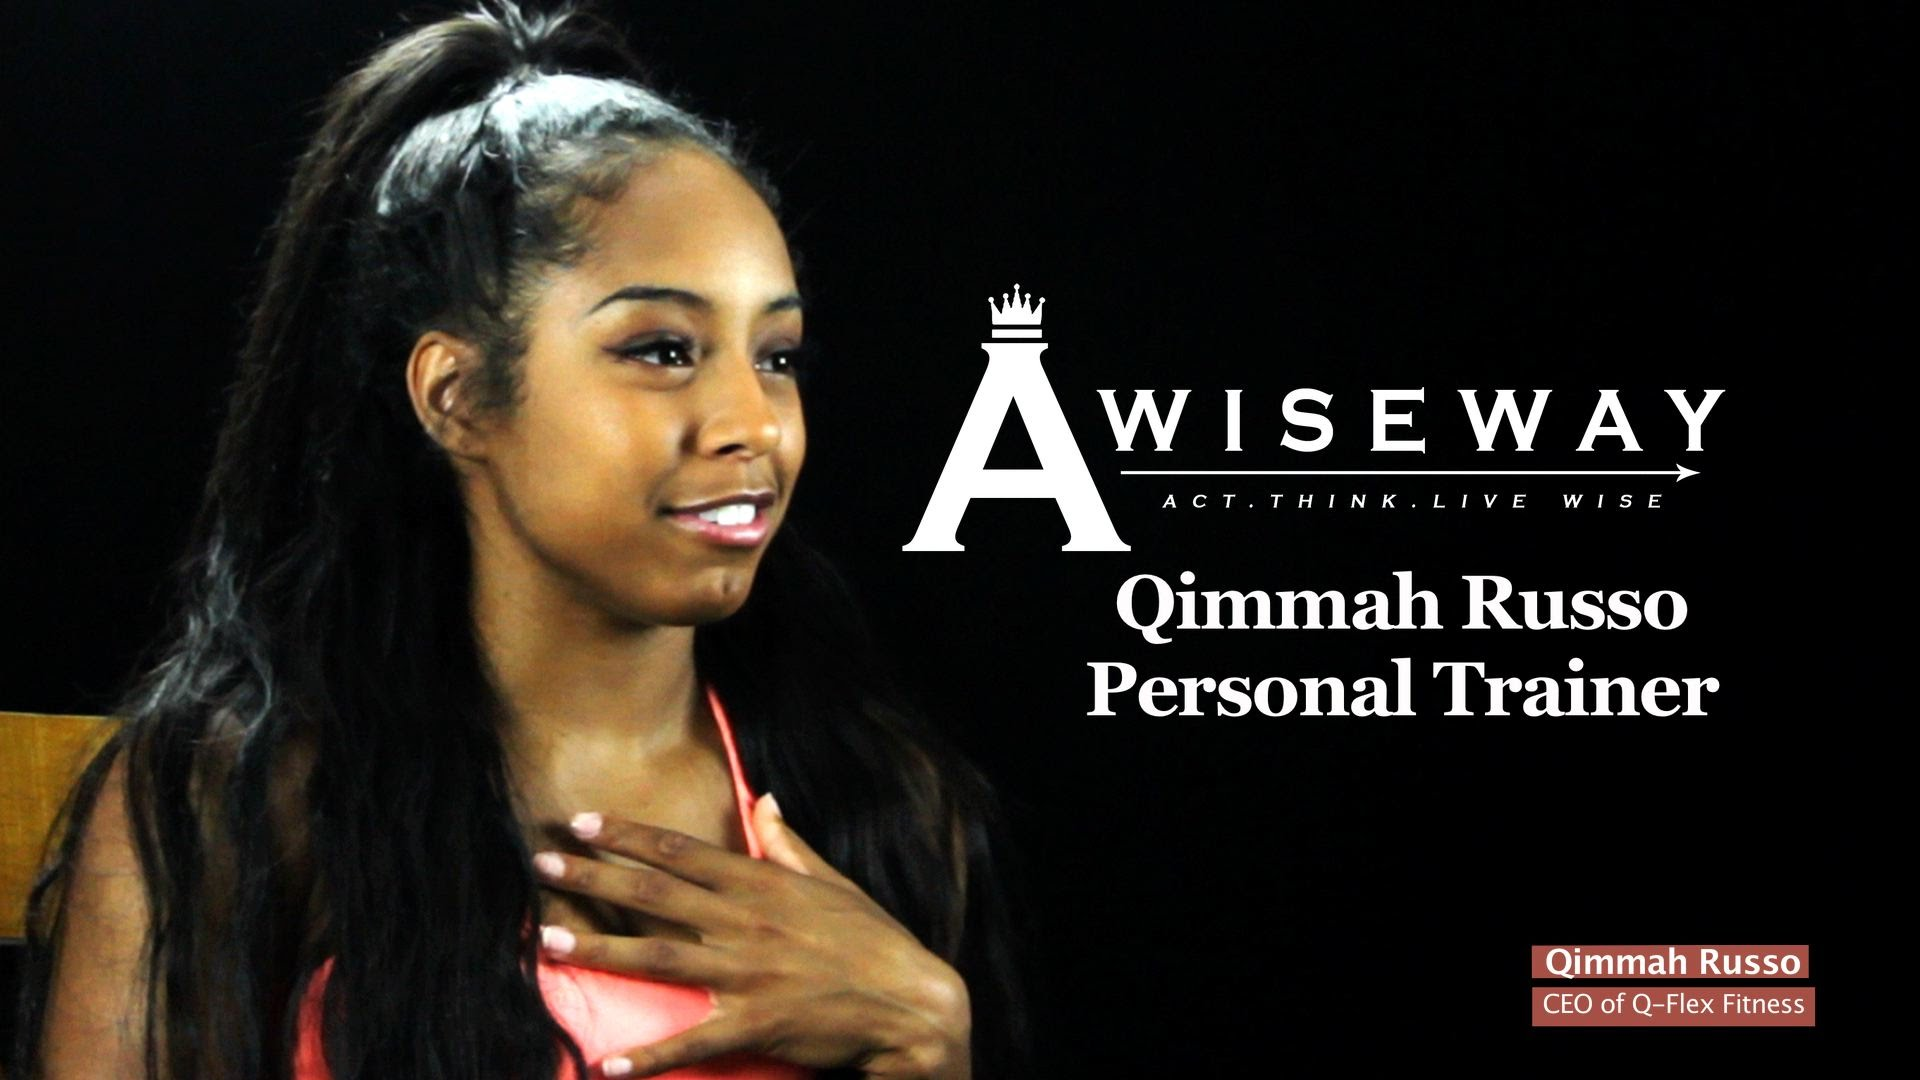 Qimmah Russo Gives Advice on Nutrition, Healthy Lifestyle, and Staying Motivated